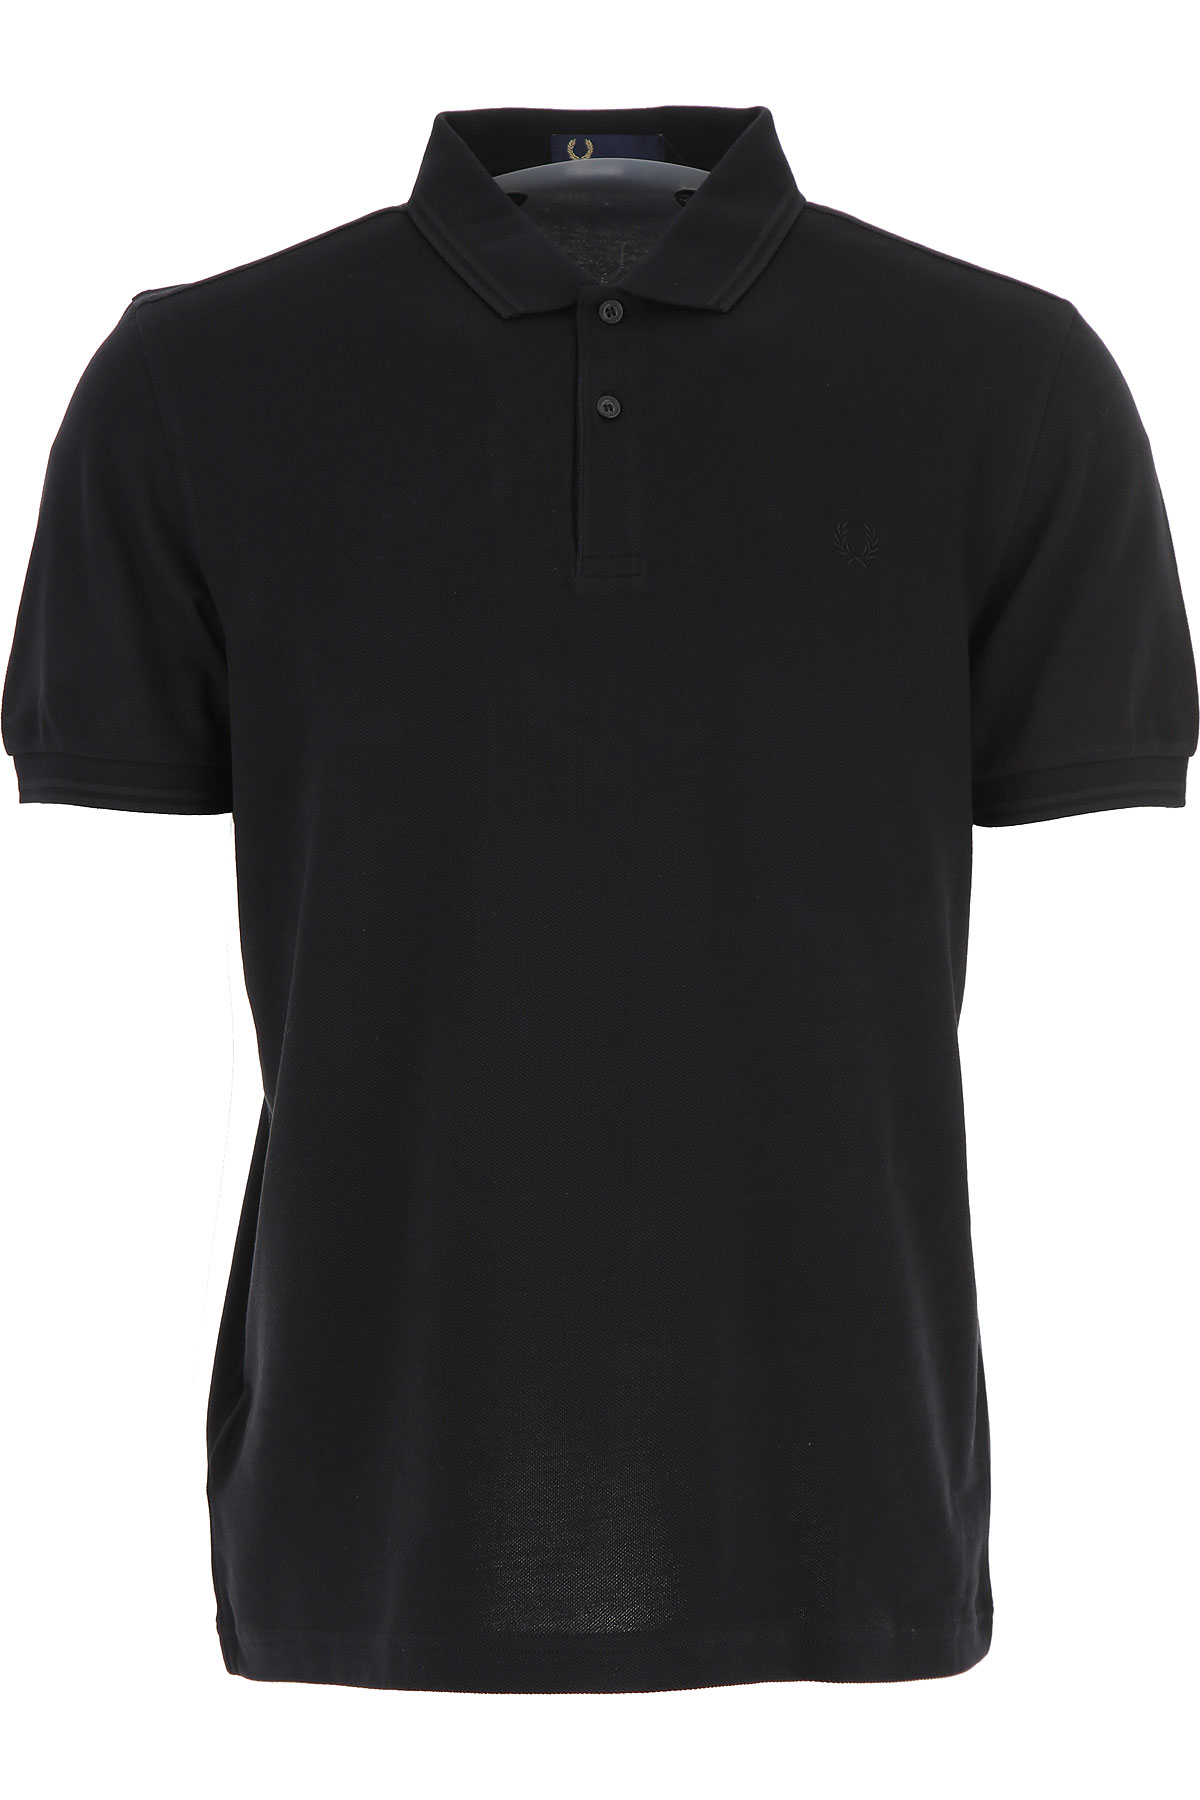 Image of Fred Perry Polo Shirt for Men, Black, Cotton, 2017, L M S XL